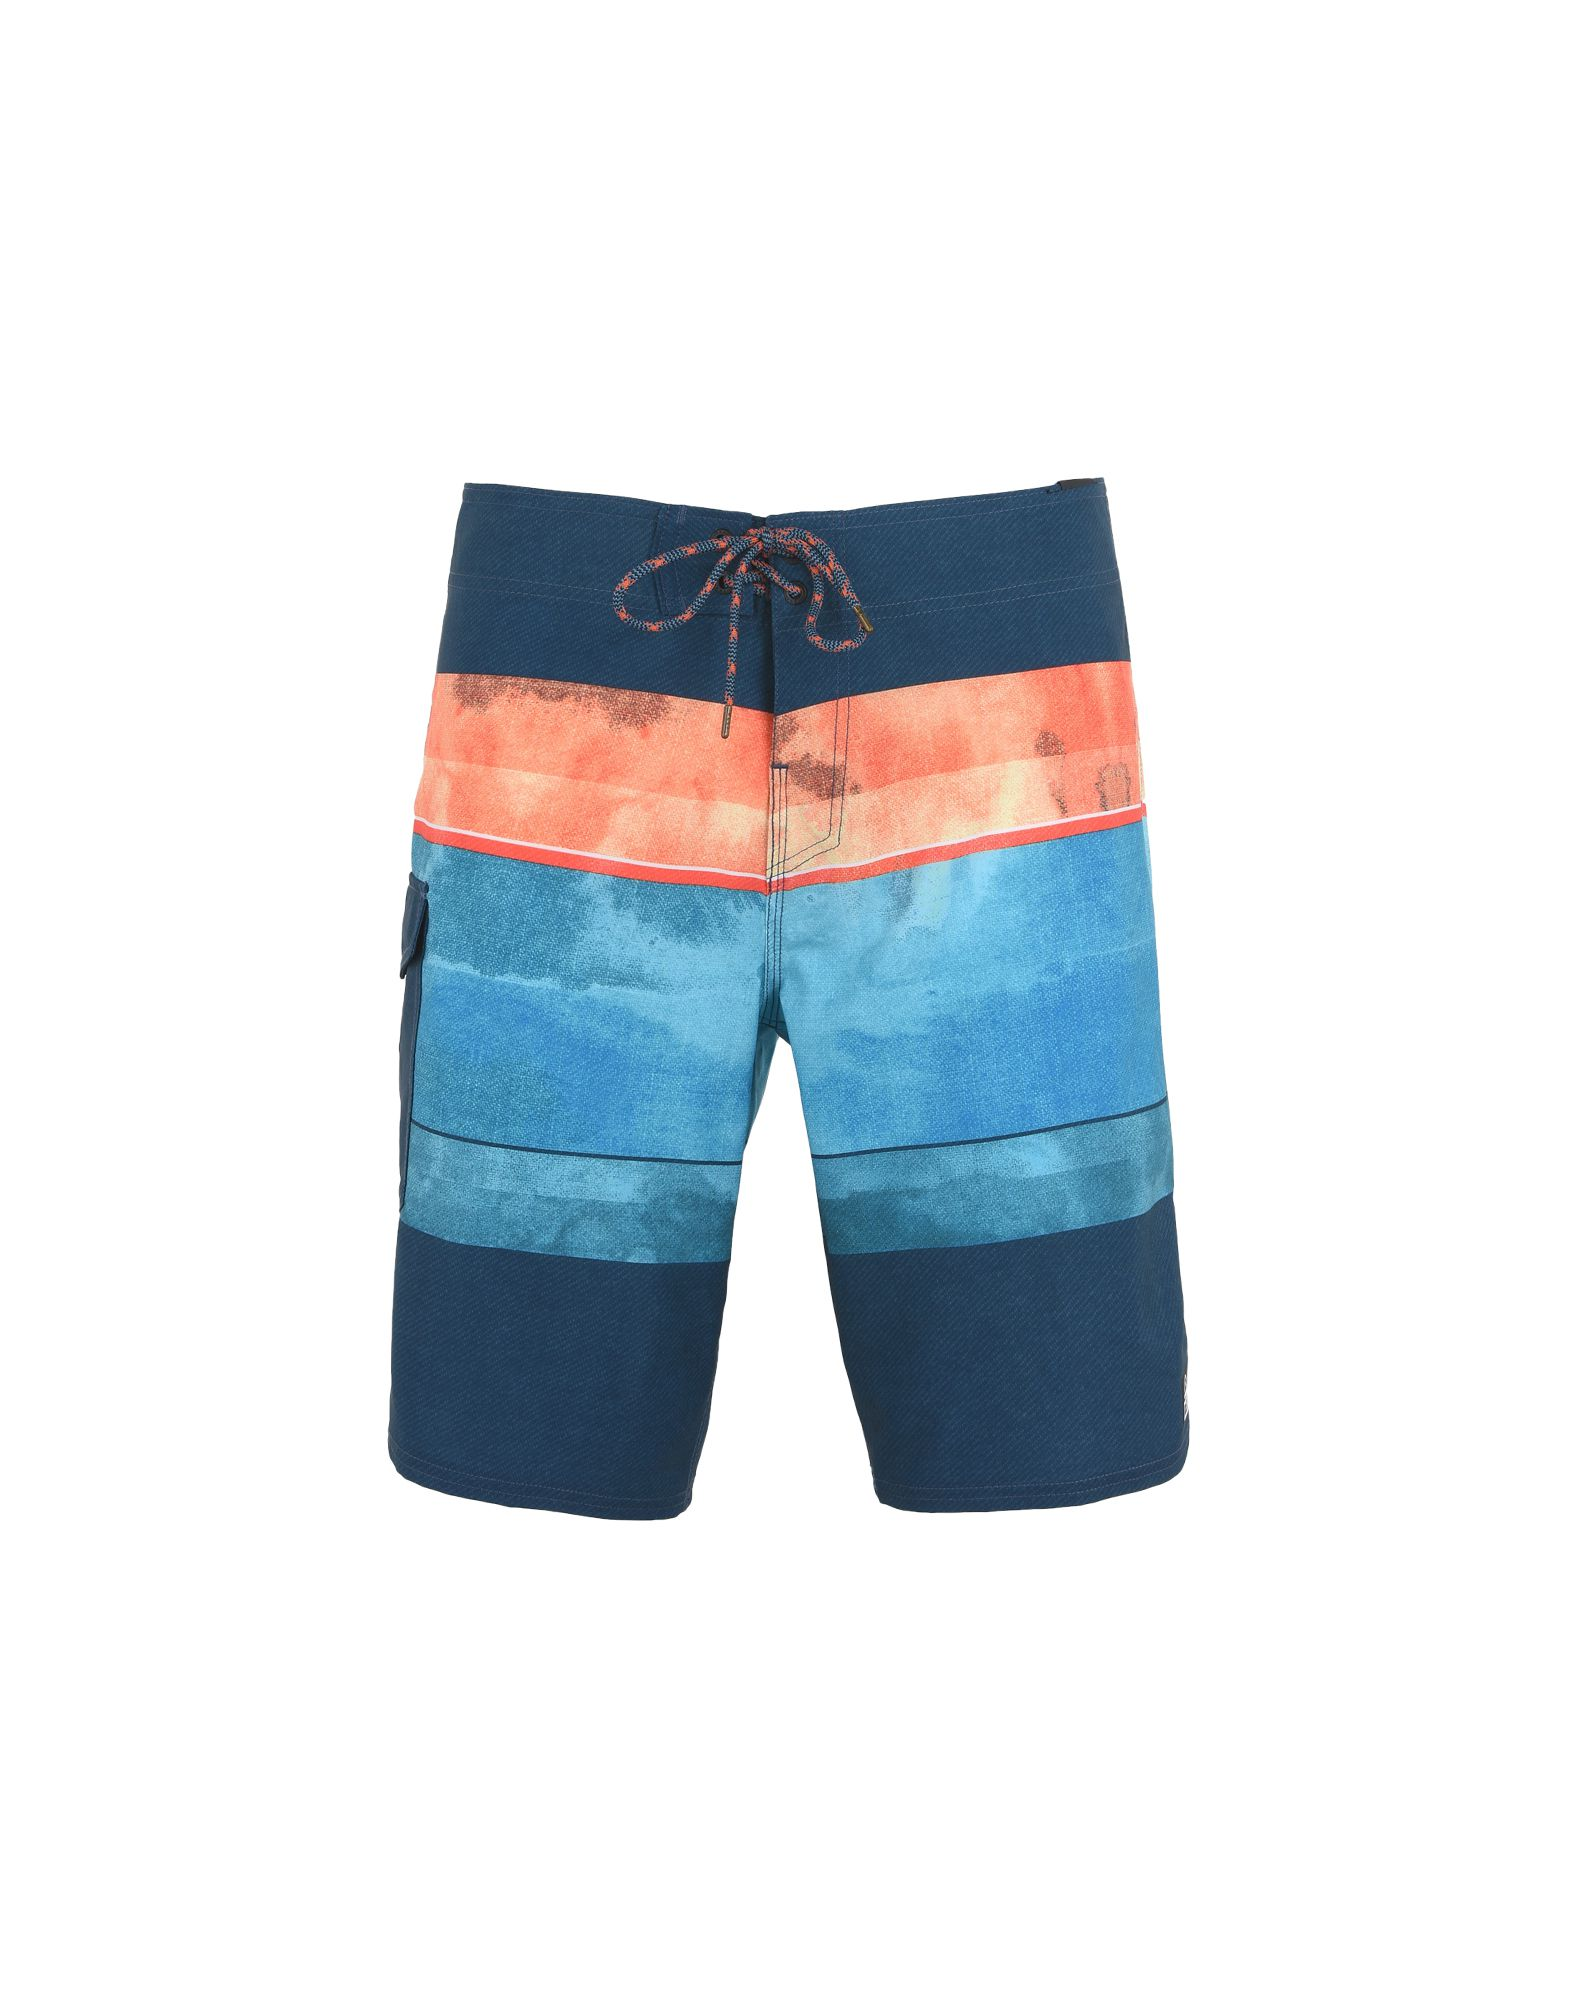 7f6a4e8a5e Reef Reef Farwell - Swim Shorts - Men Reef Swim Shorts online on ...